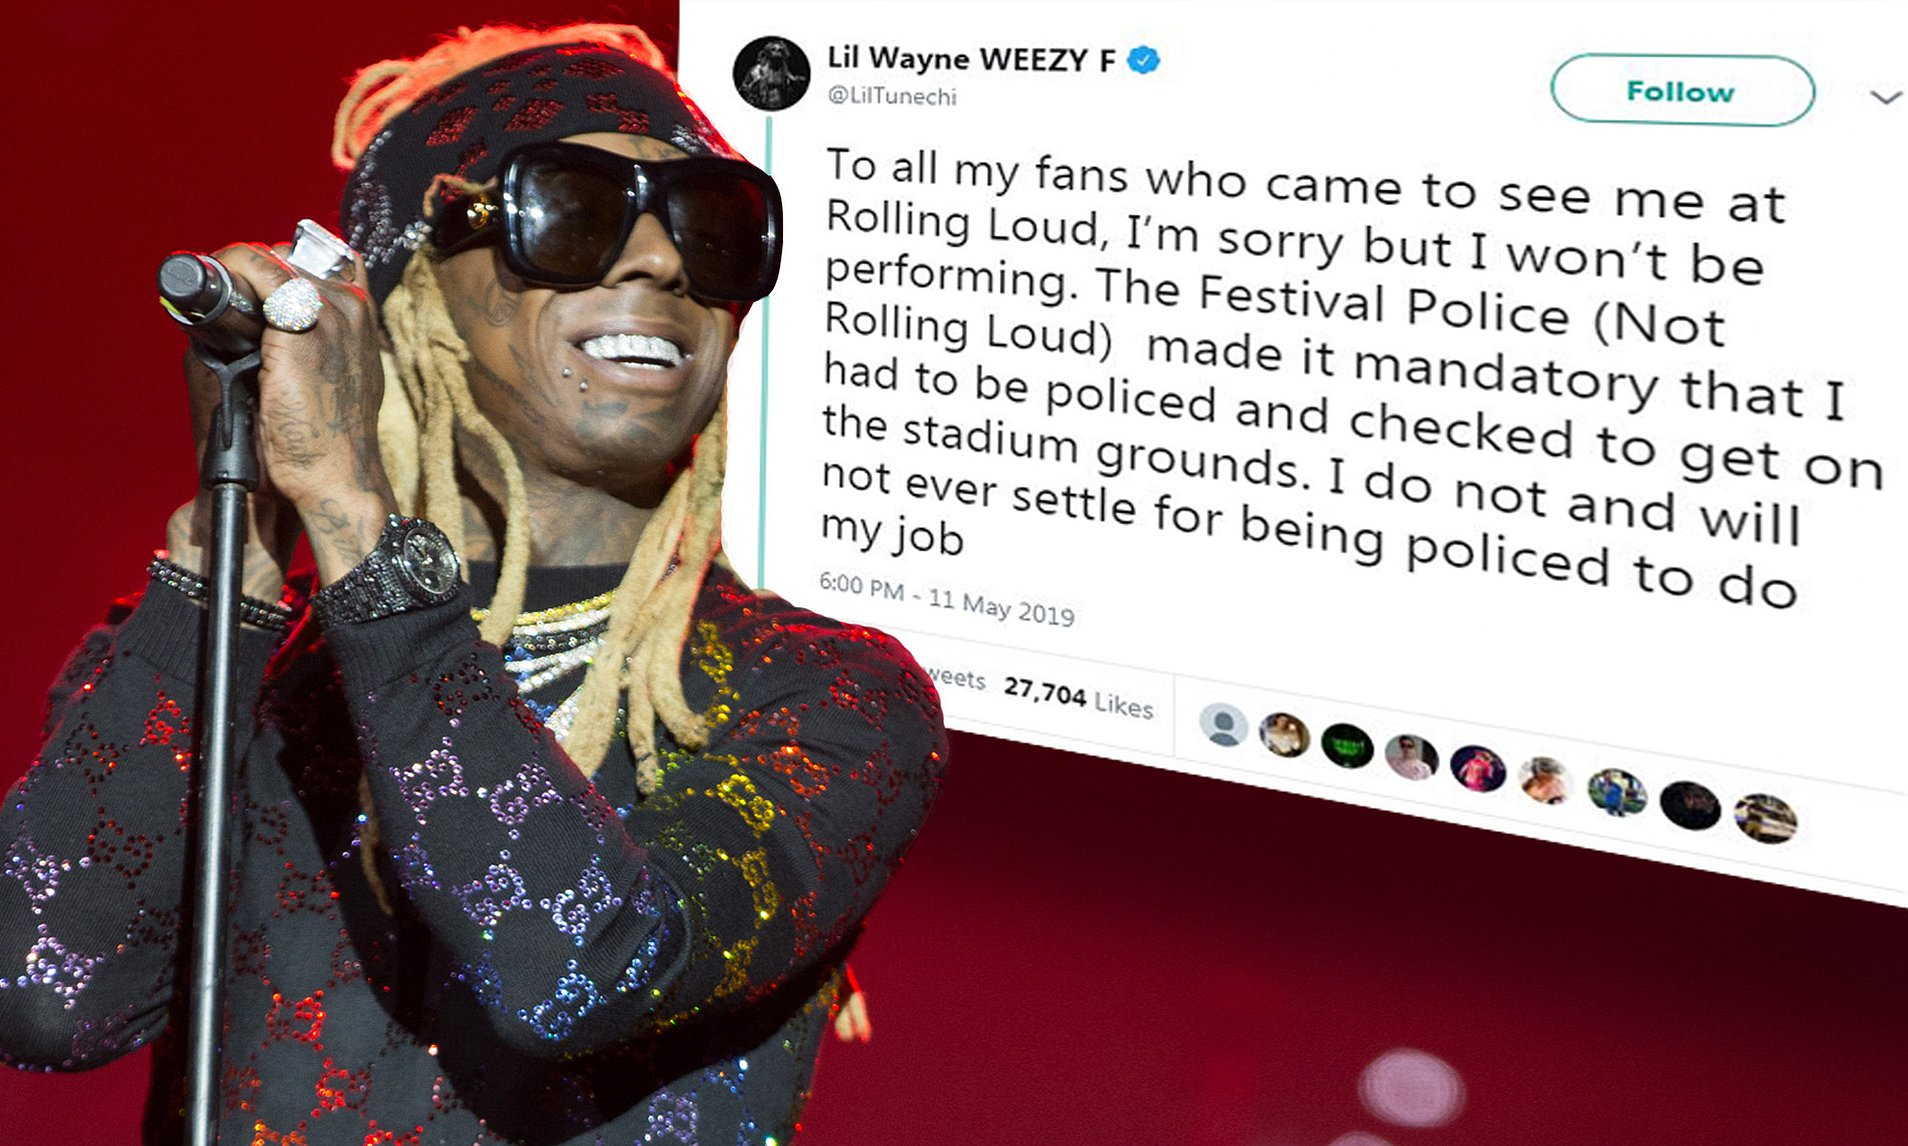 Security Stops Lil Wayne For A 'Mandatory' Search And He Abruptly Cancels His Rolling Loud Performance